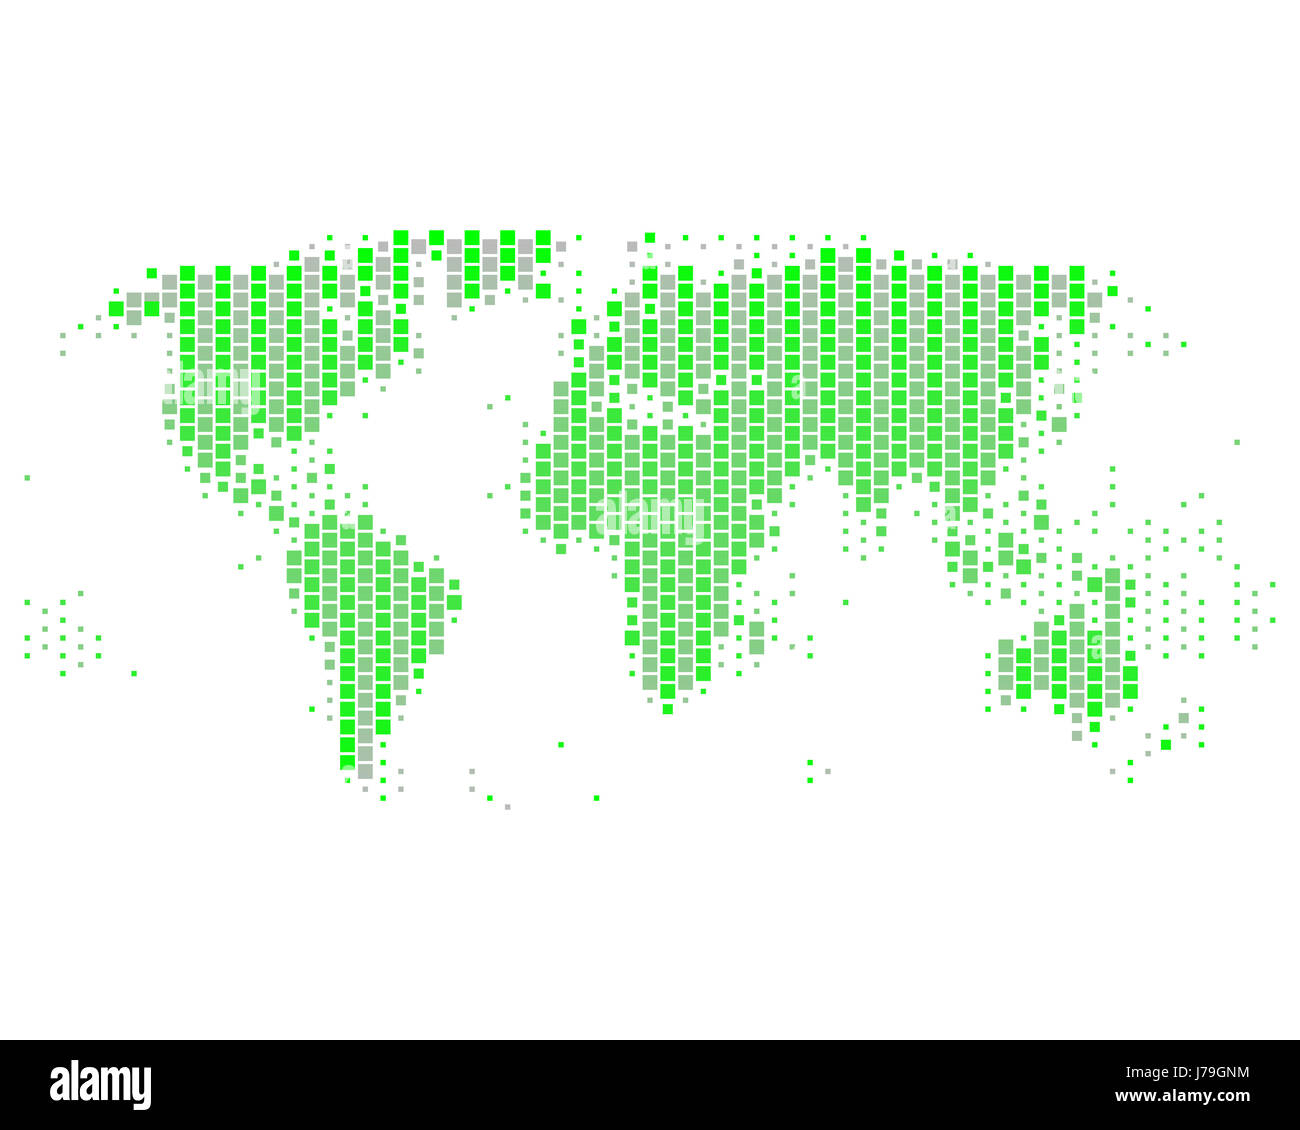 Square Earth Map.Green Angular Square Card Dot Globe Planet Earth World Atlas Map Of